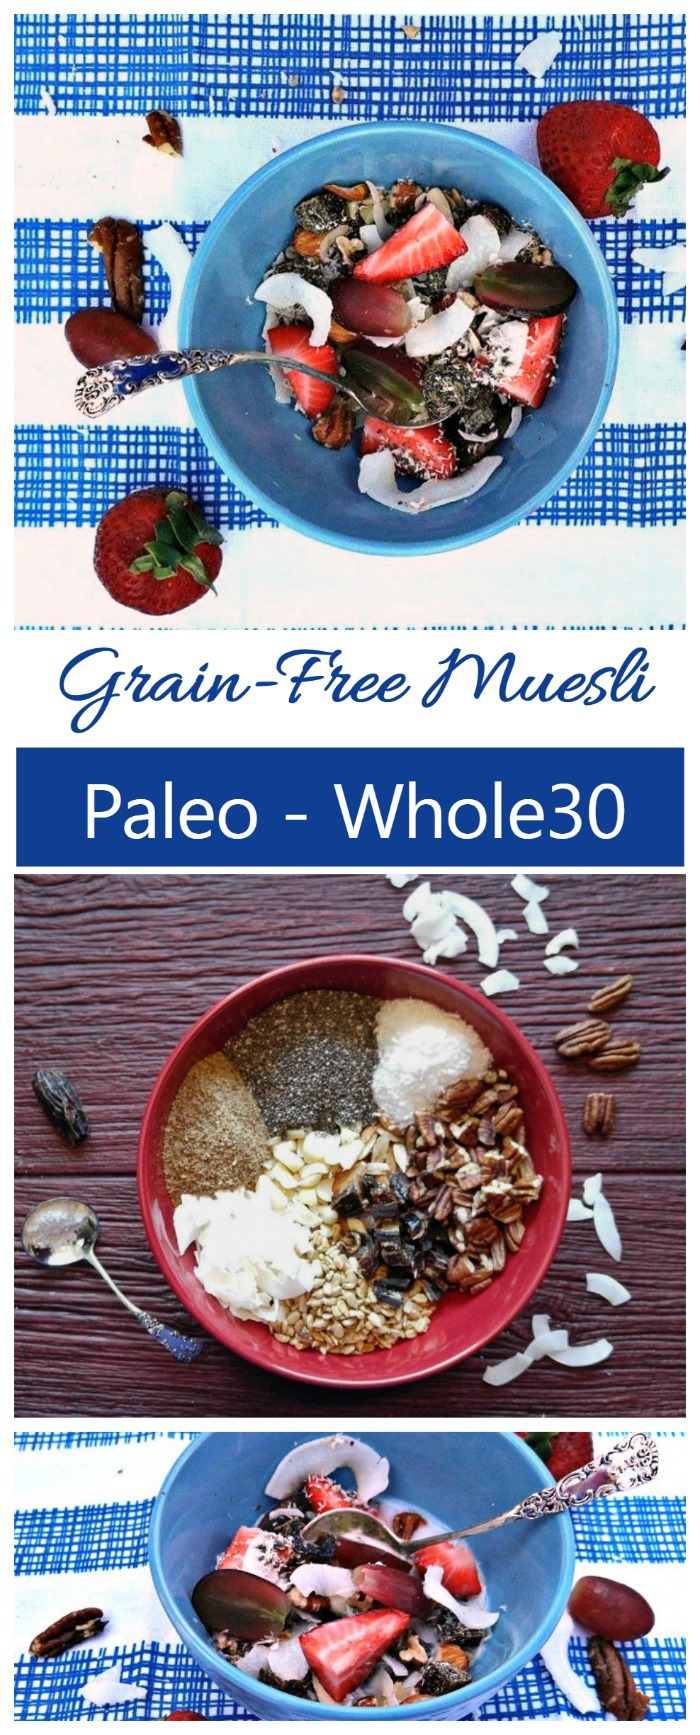 Grain Free Muesli - Kick the Carbs! Whole30 - Paleo